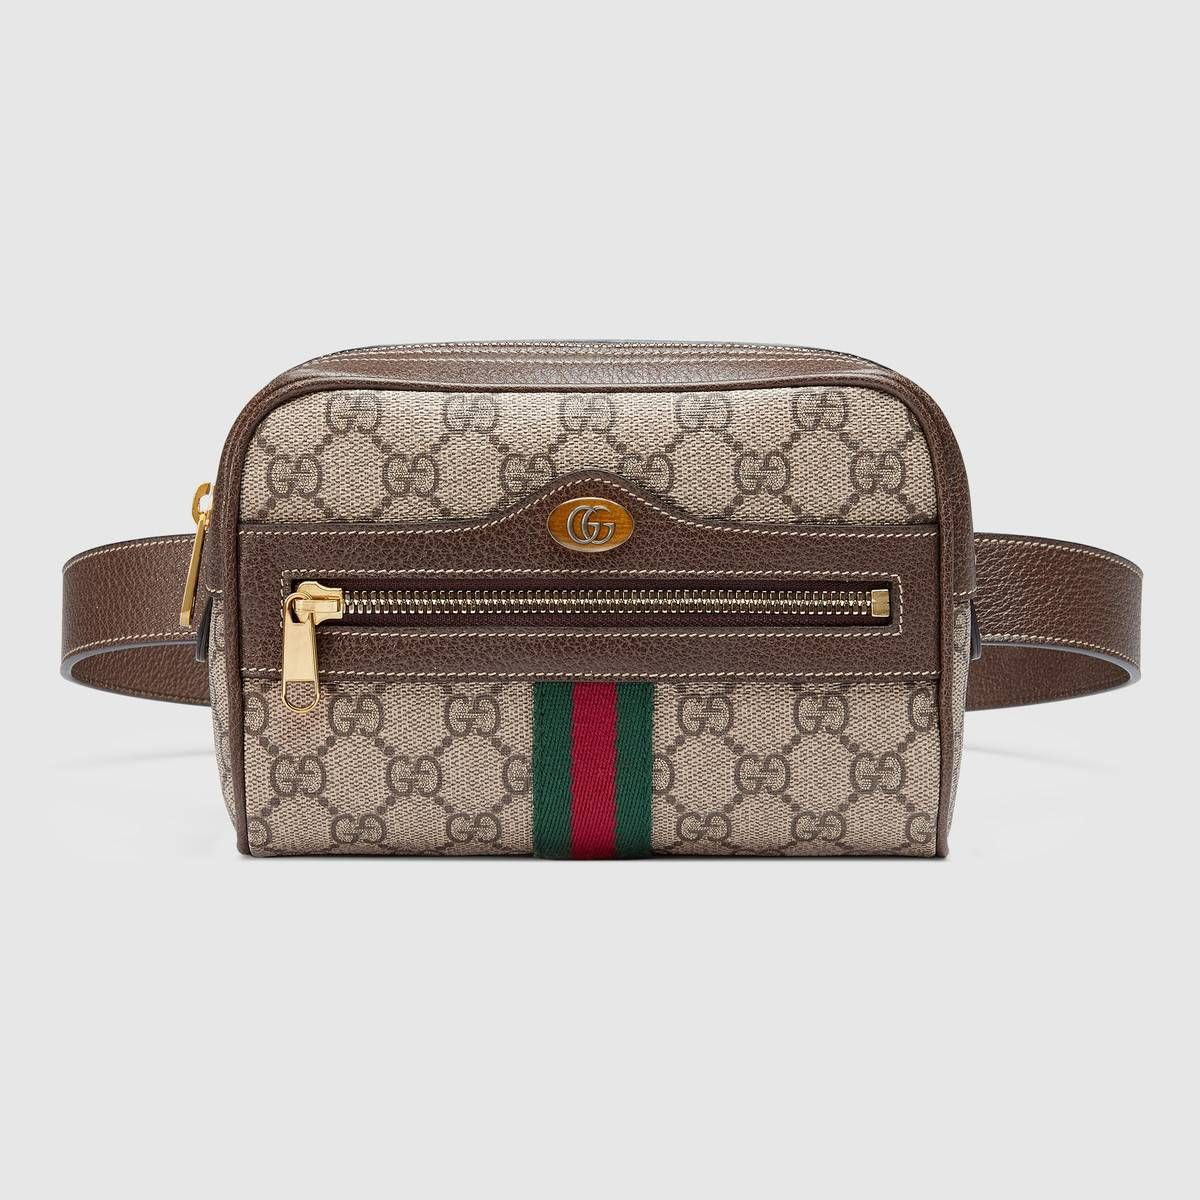 647dadc424a Shop the Ophidia GG Supreme small belt bag by Gucci. First used in the  1970s, the GG logo was an evolution of the original Gucci rhombi design  from the ...